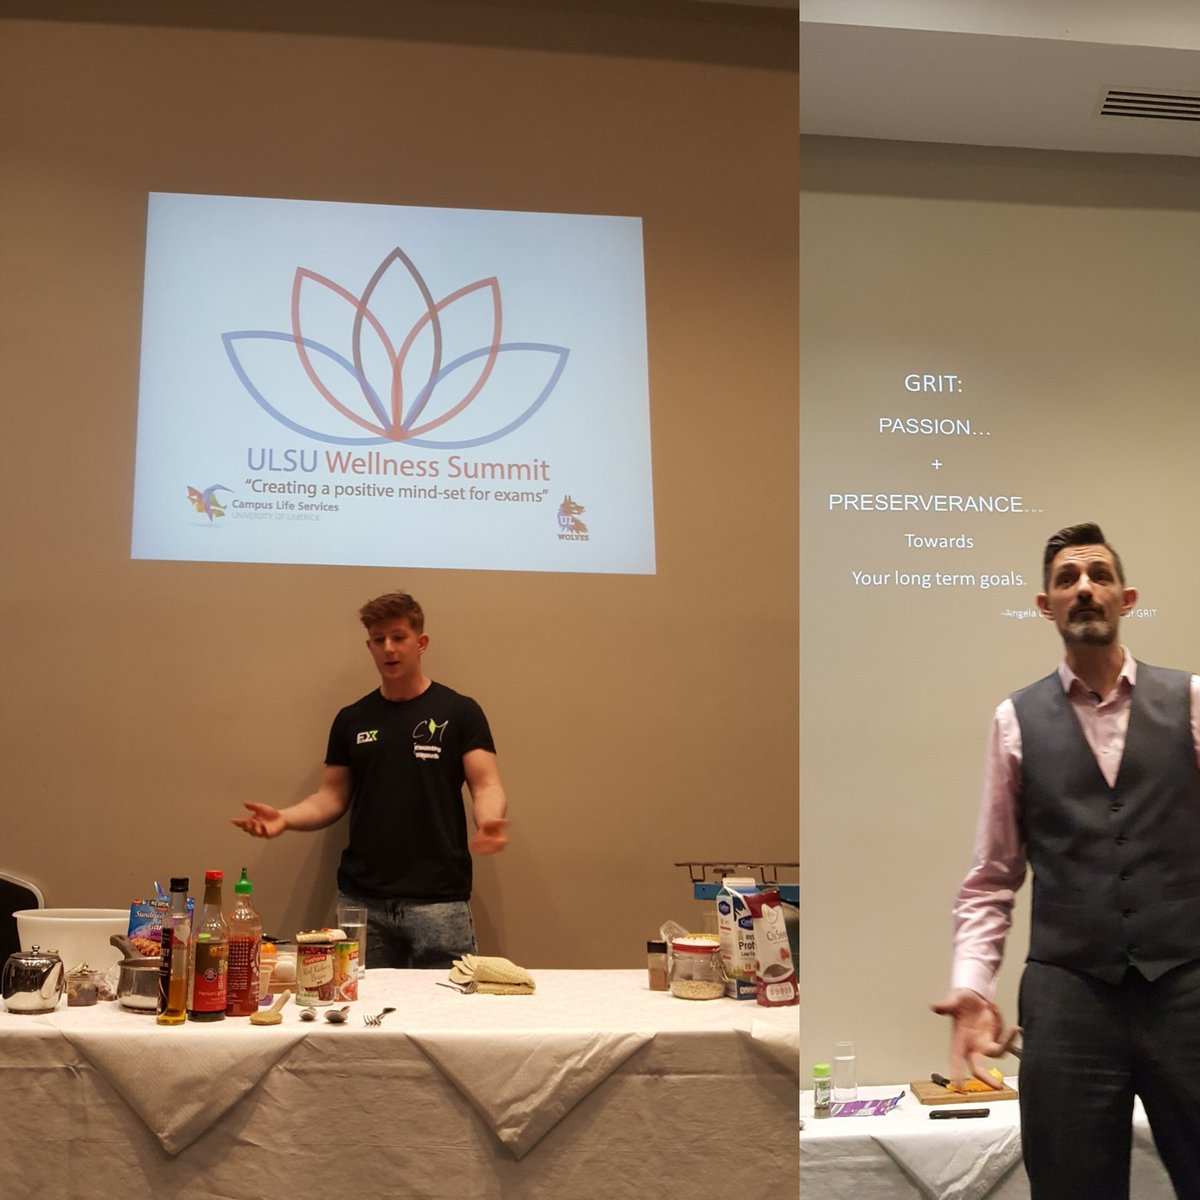 Tonight I, along with 100+ students, attended ULSU first wellness Summit &amp; it was class. 3 Limerick peeps gave great talks and demos on how to eat well, live well, be well, resilience &amp; grit #countrymunch #fit100 @ryanoreillyint @ulstudentsunion #studyatul @AccommodationUL<br>http://pic.twitter.com/yVzWDI5zlX